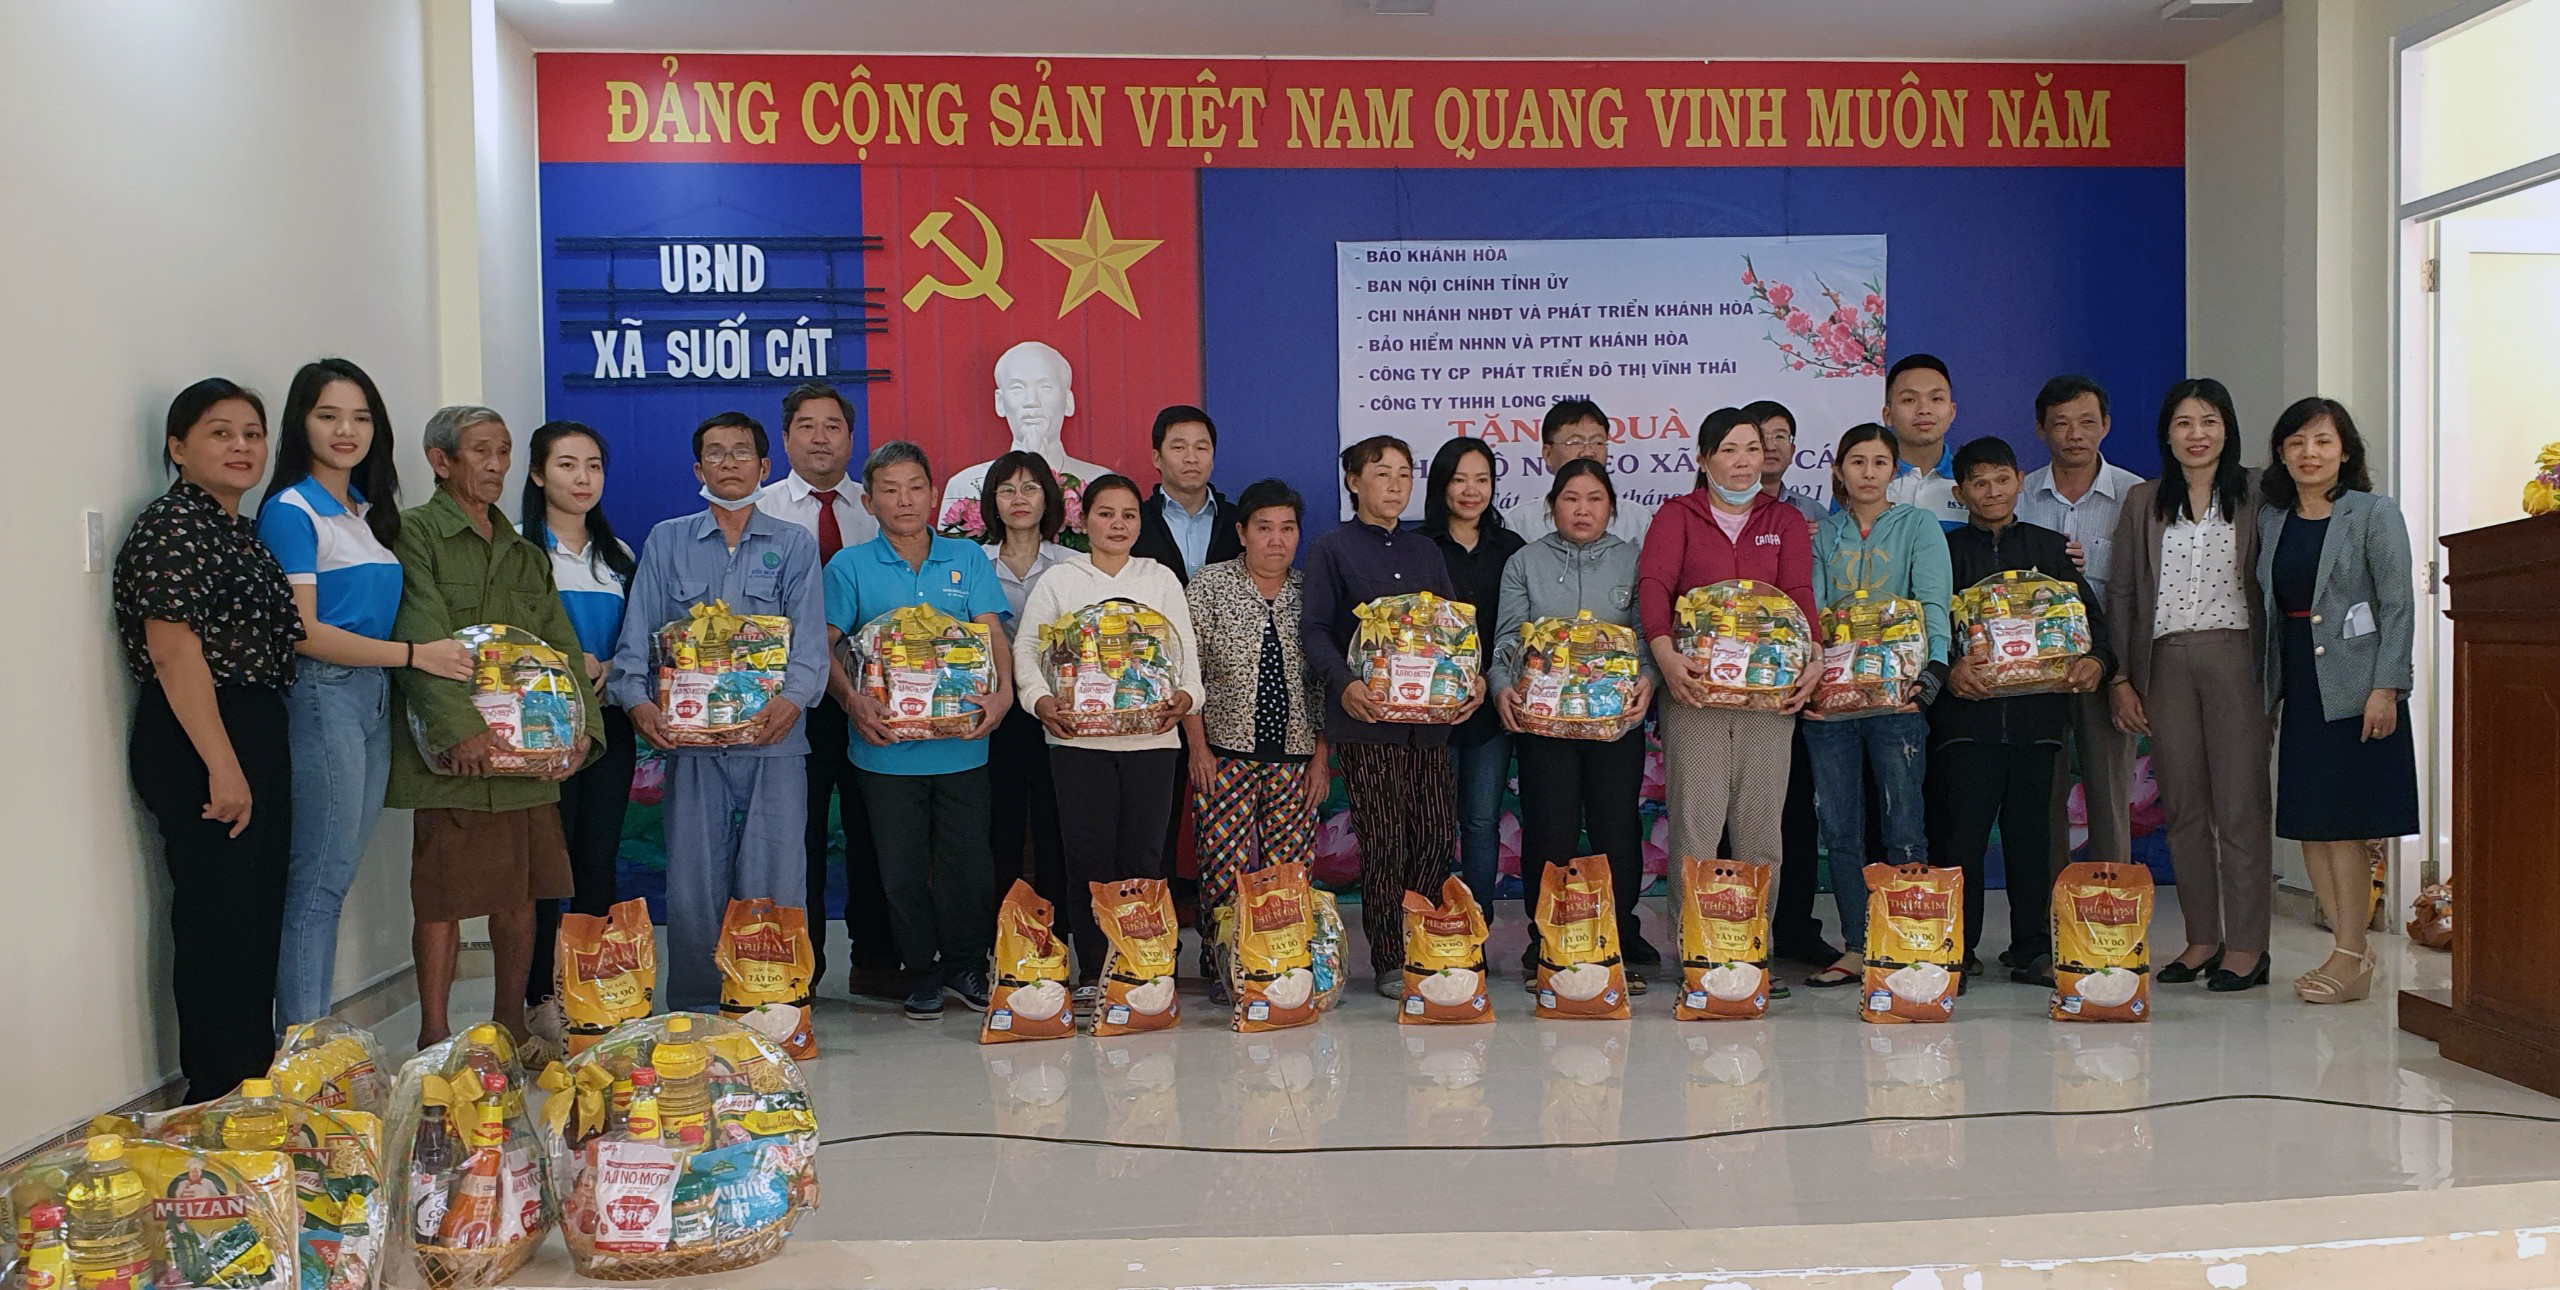 200 New Year gifts to Suoi Cat Commune